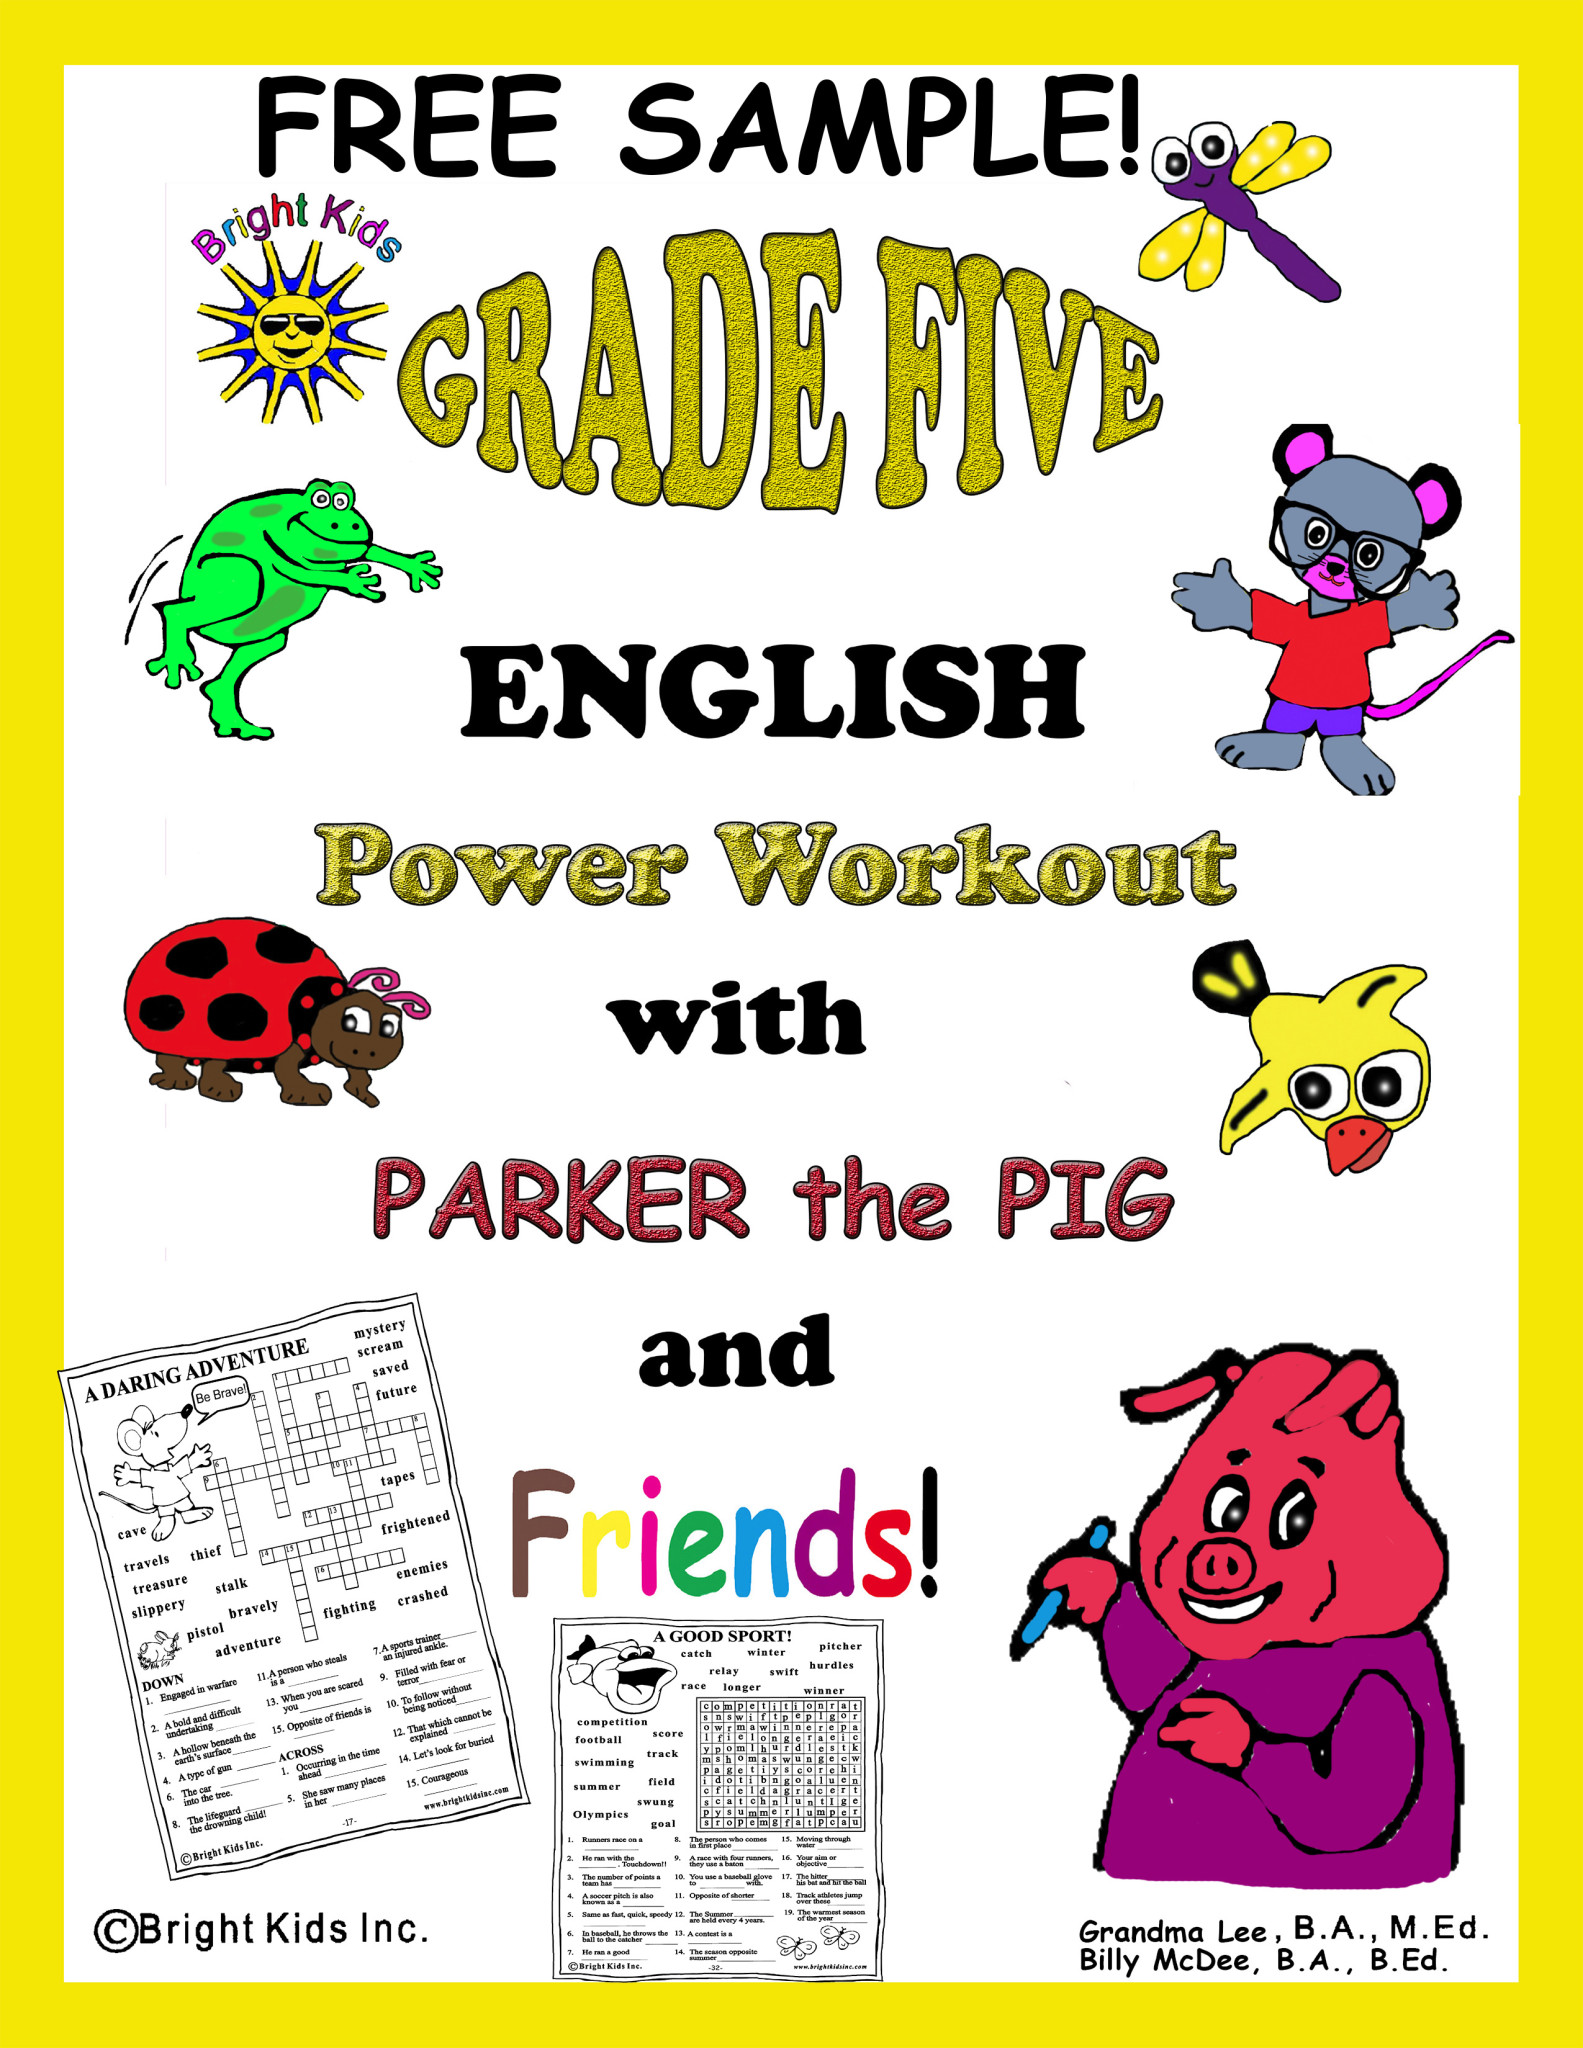 Grade 5 English Word Power Workout